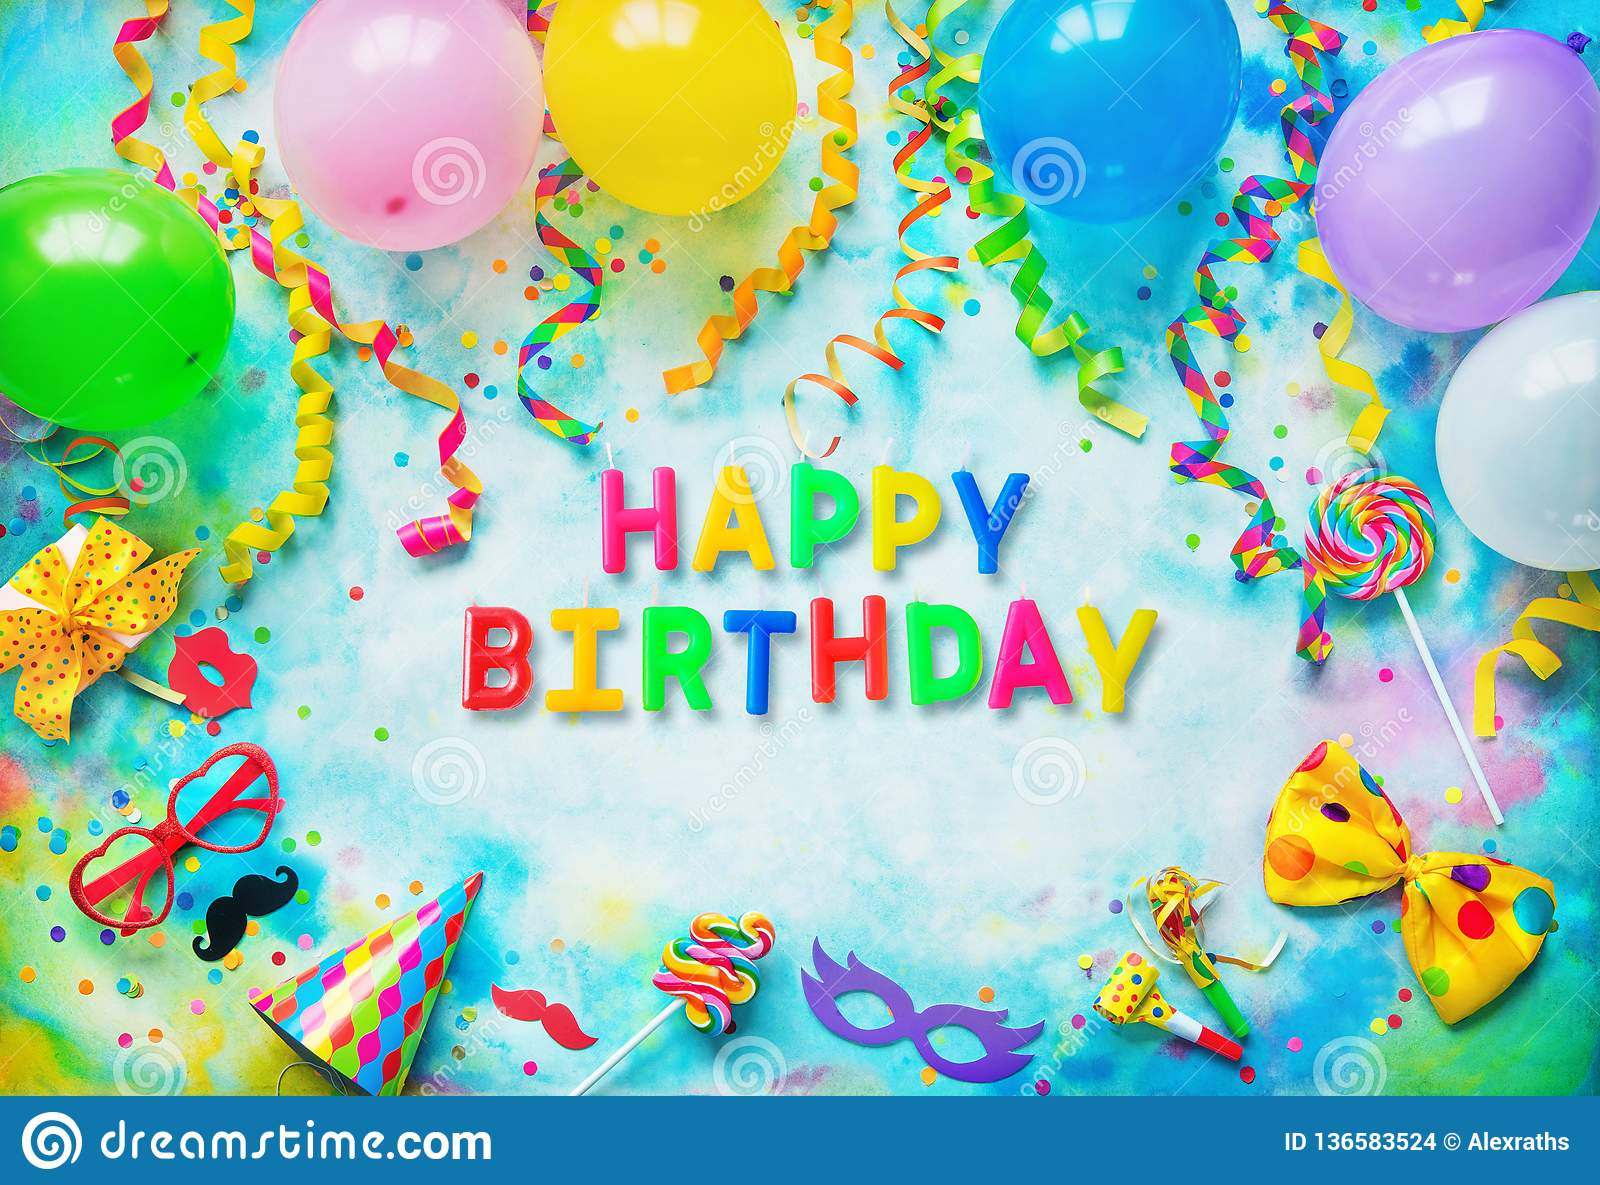 Balloons Gift Box Confetti Candy Bow Tie Sunglasses Party Hat And Streamers On Colorful Background With Text Happy Birthday From Candles Top